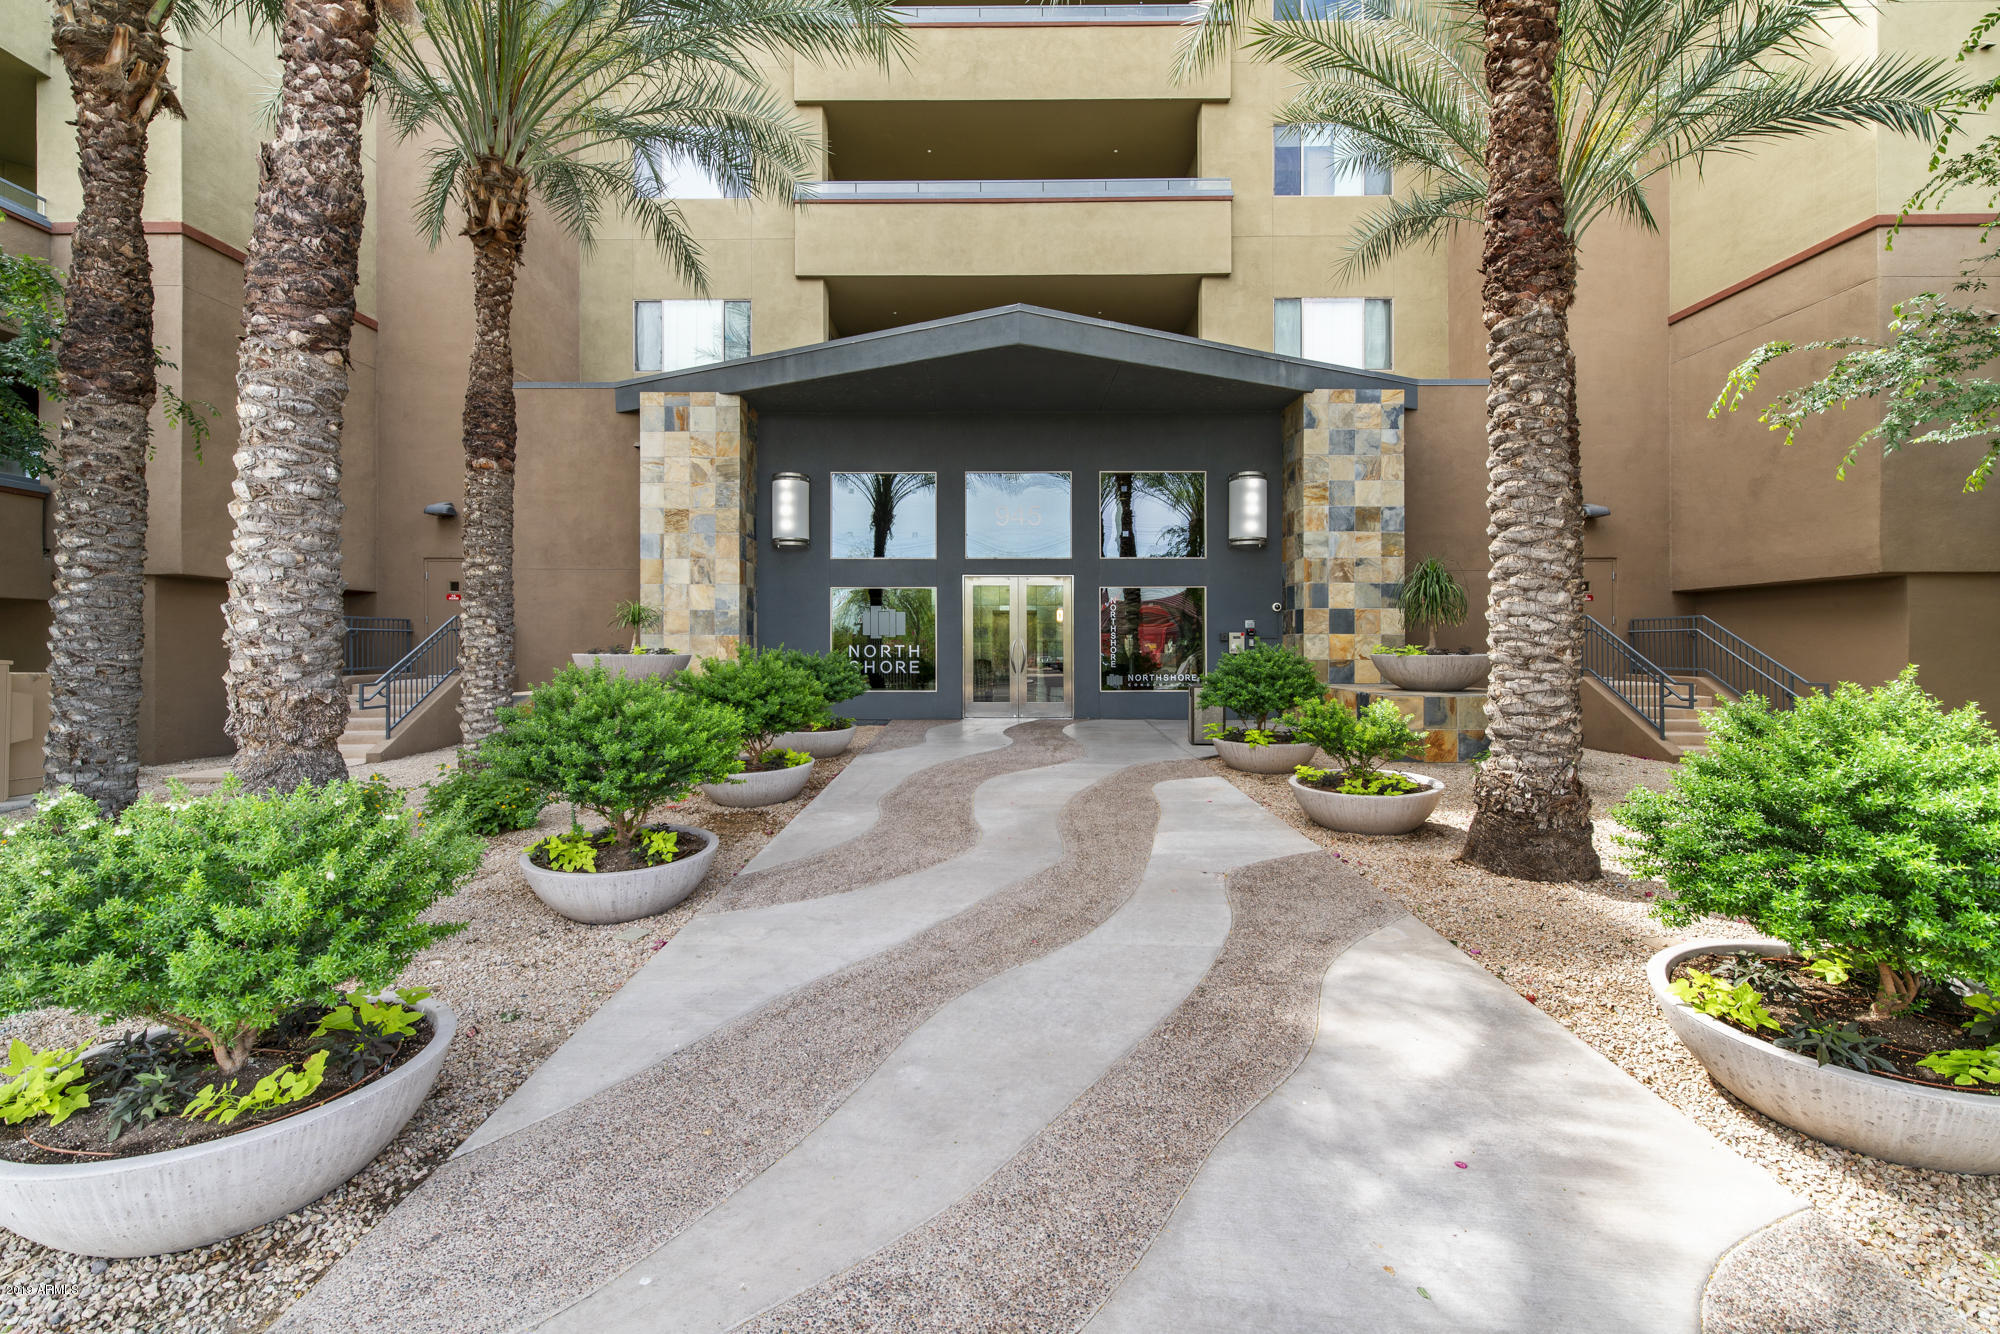 MLS 5923575 945 E PLAYA DEL NORTE Drive Unit 5021, Tempe, AZ 85281 Tempe AZ Waterfront